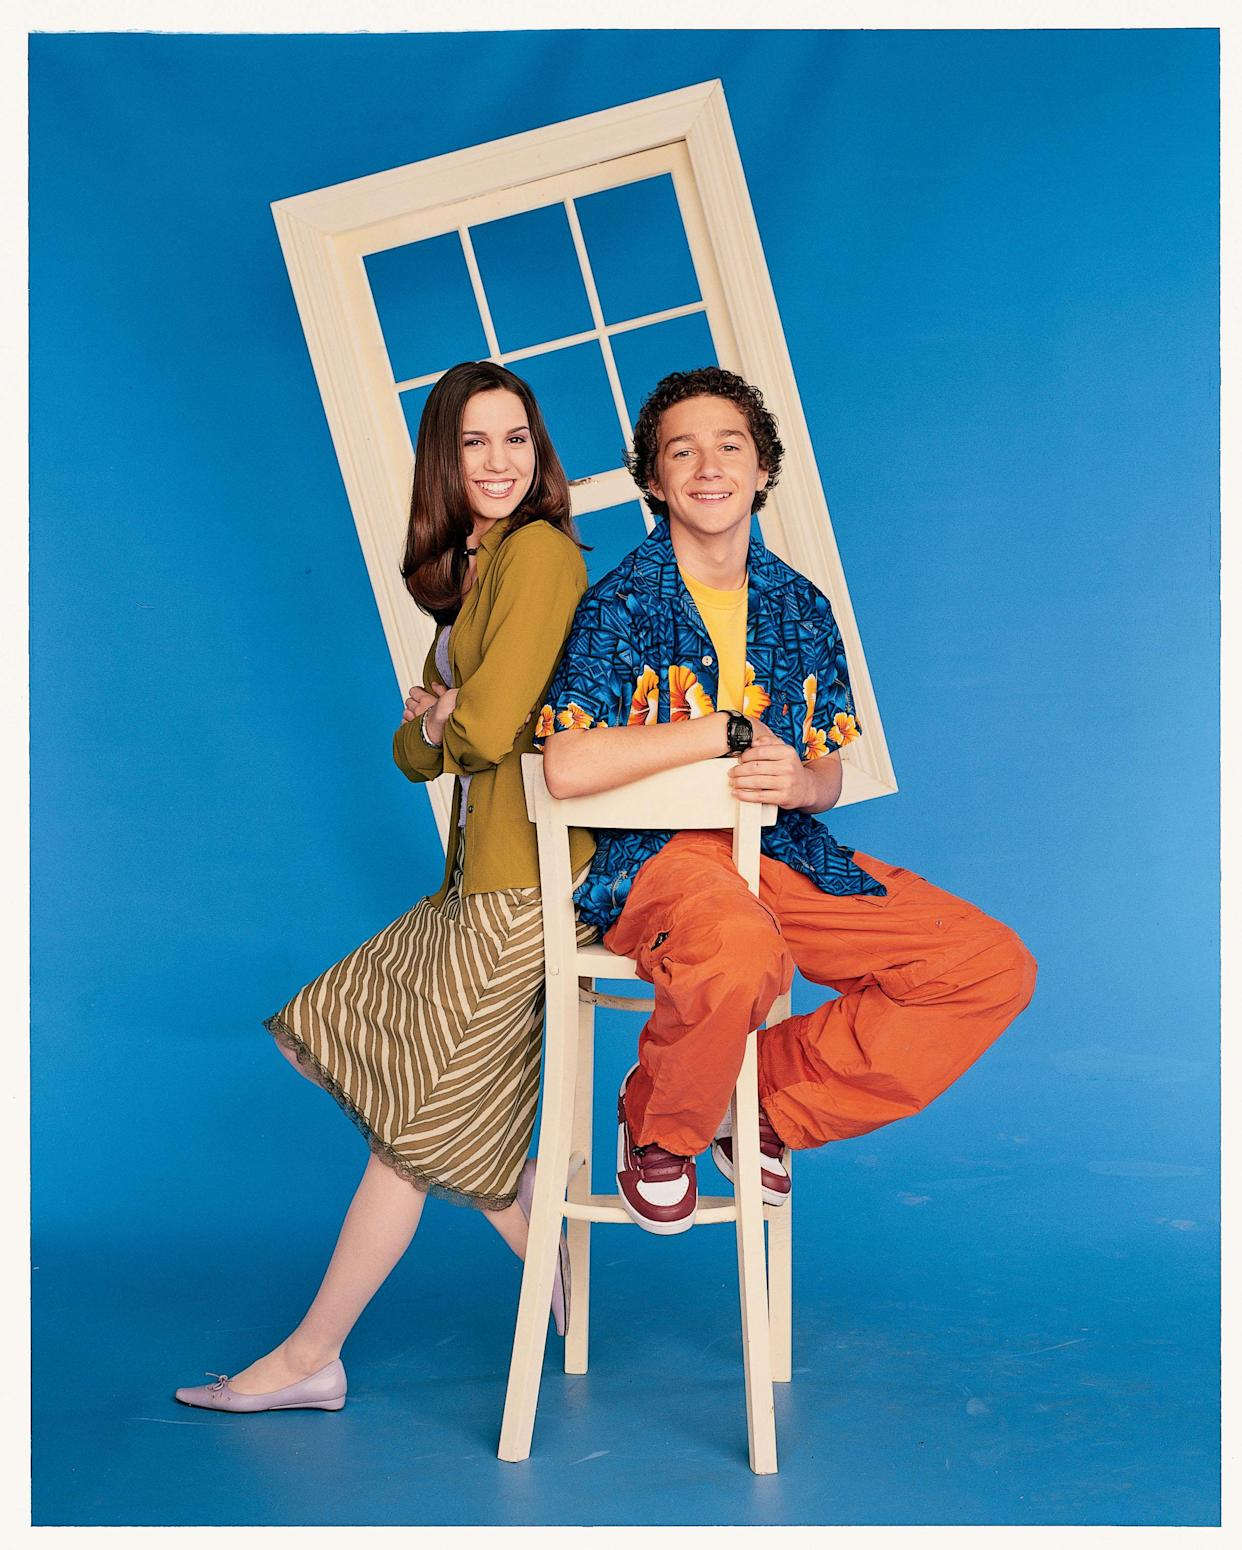 EVEN STEVENS - Christy Carlson Romano stars as 'Ren Stevens,' and Shia LaBeouf stars as 'Louis Stevens' on 'Even Stevens' on the Disney Channel.  (Photo by George Lange/Disney Channel via Getty Images) CHRISTY CARLSON ROMANO;SHIA LABEOUF